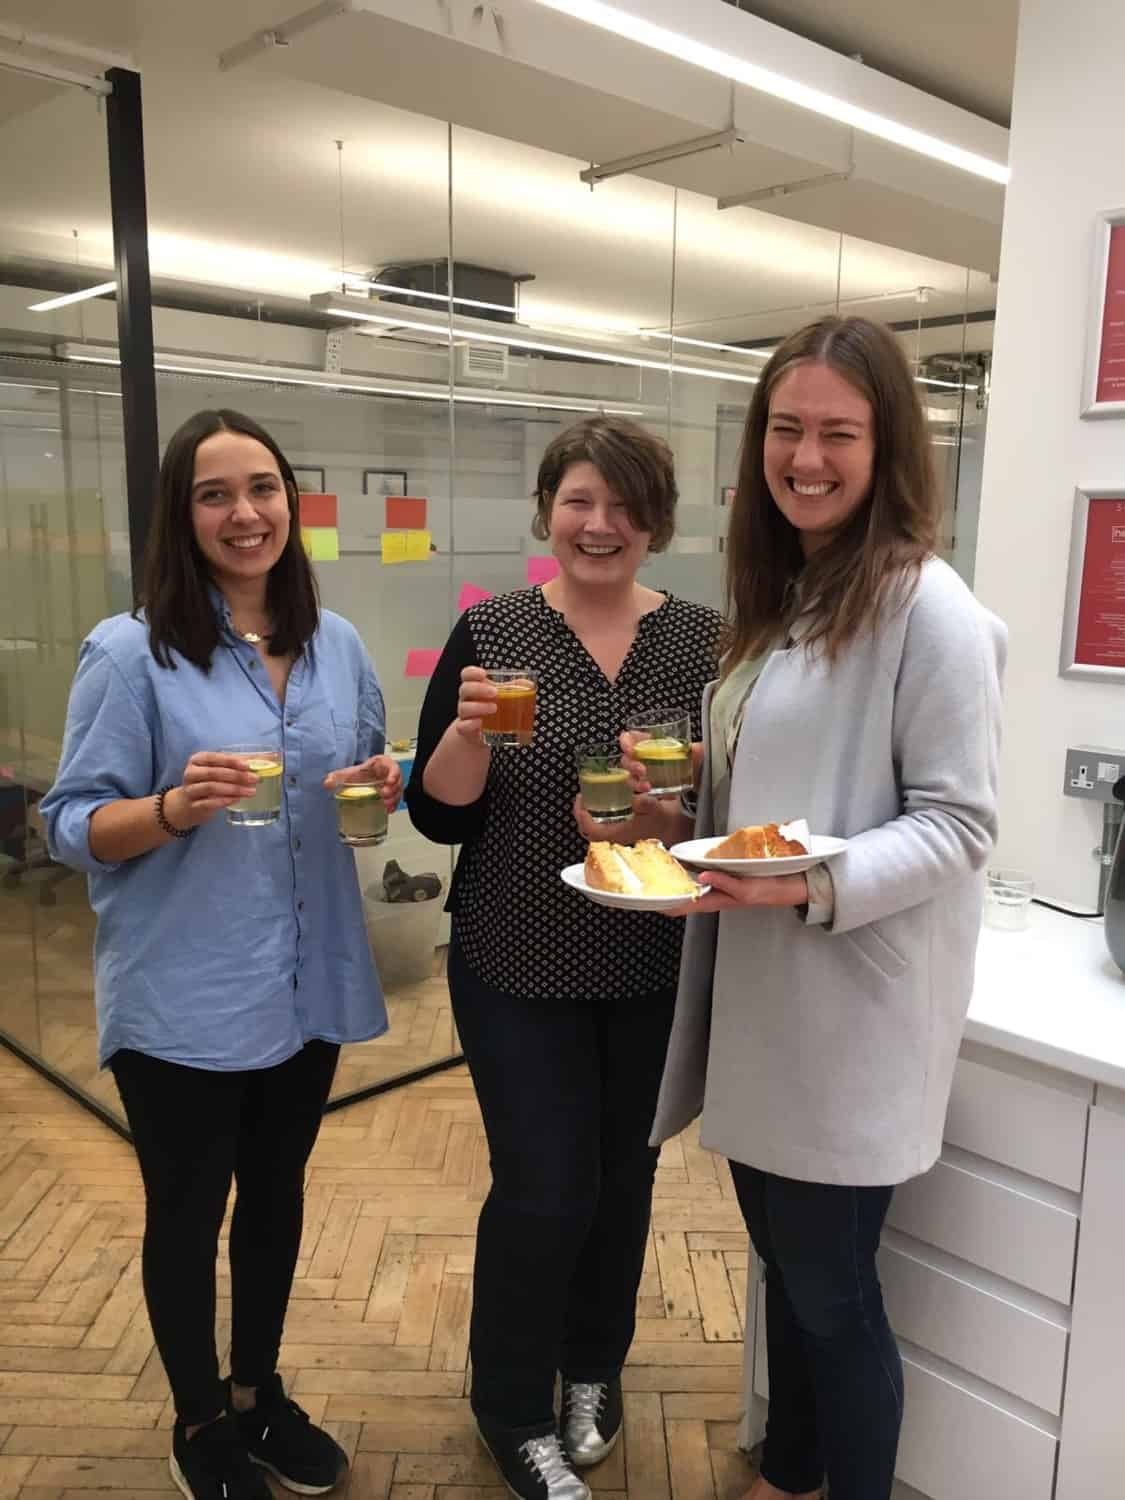 Three women holding drinks and food